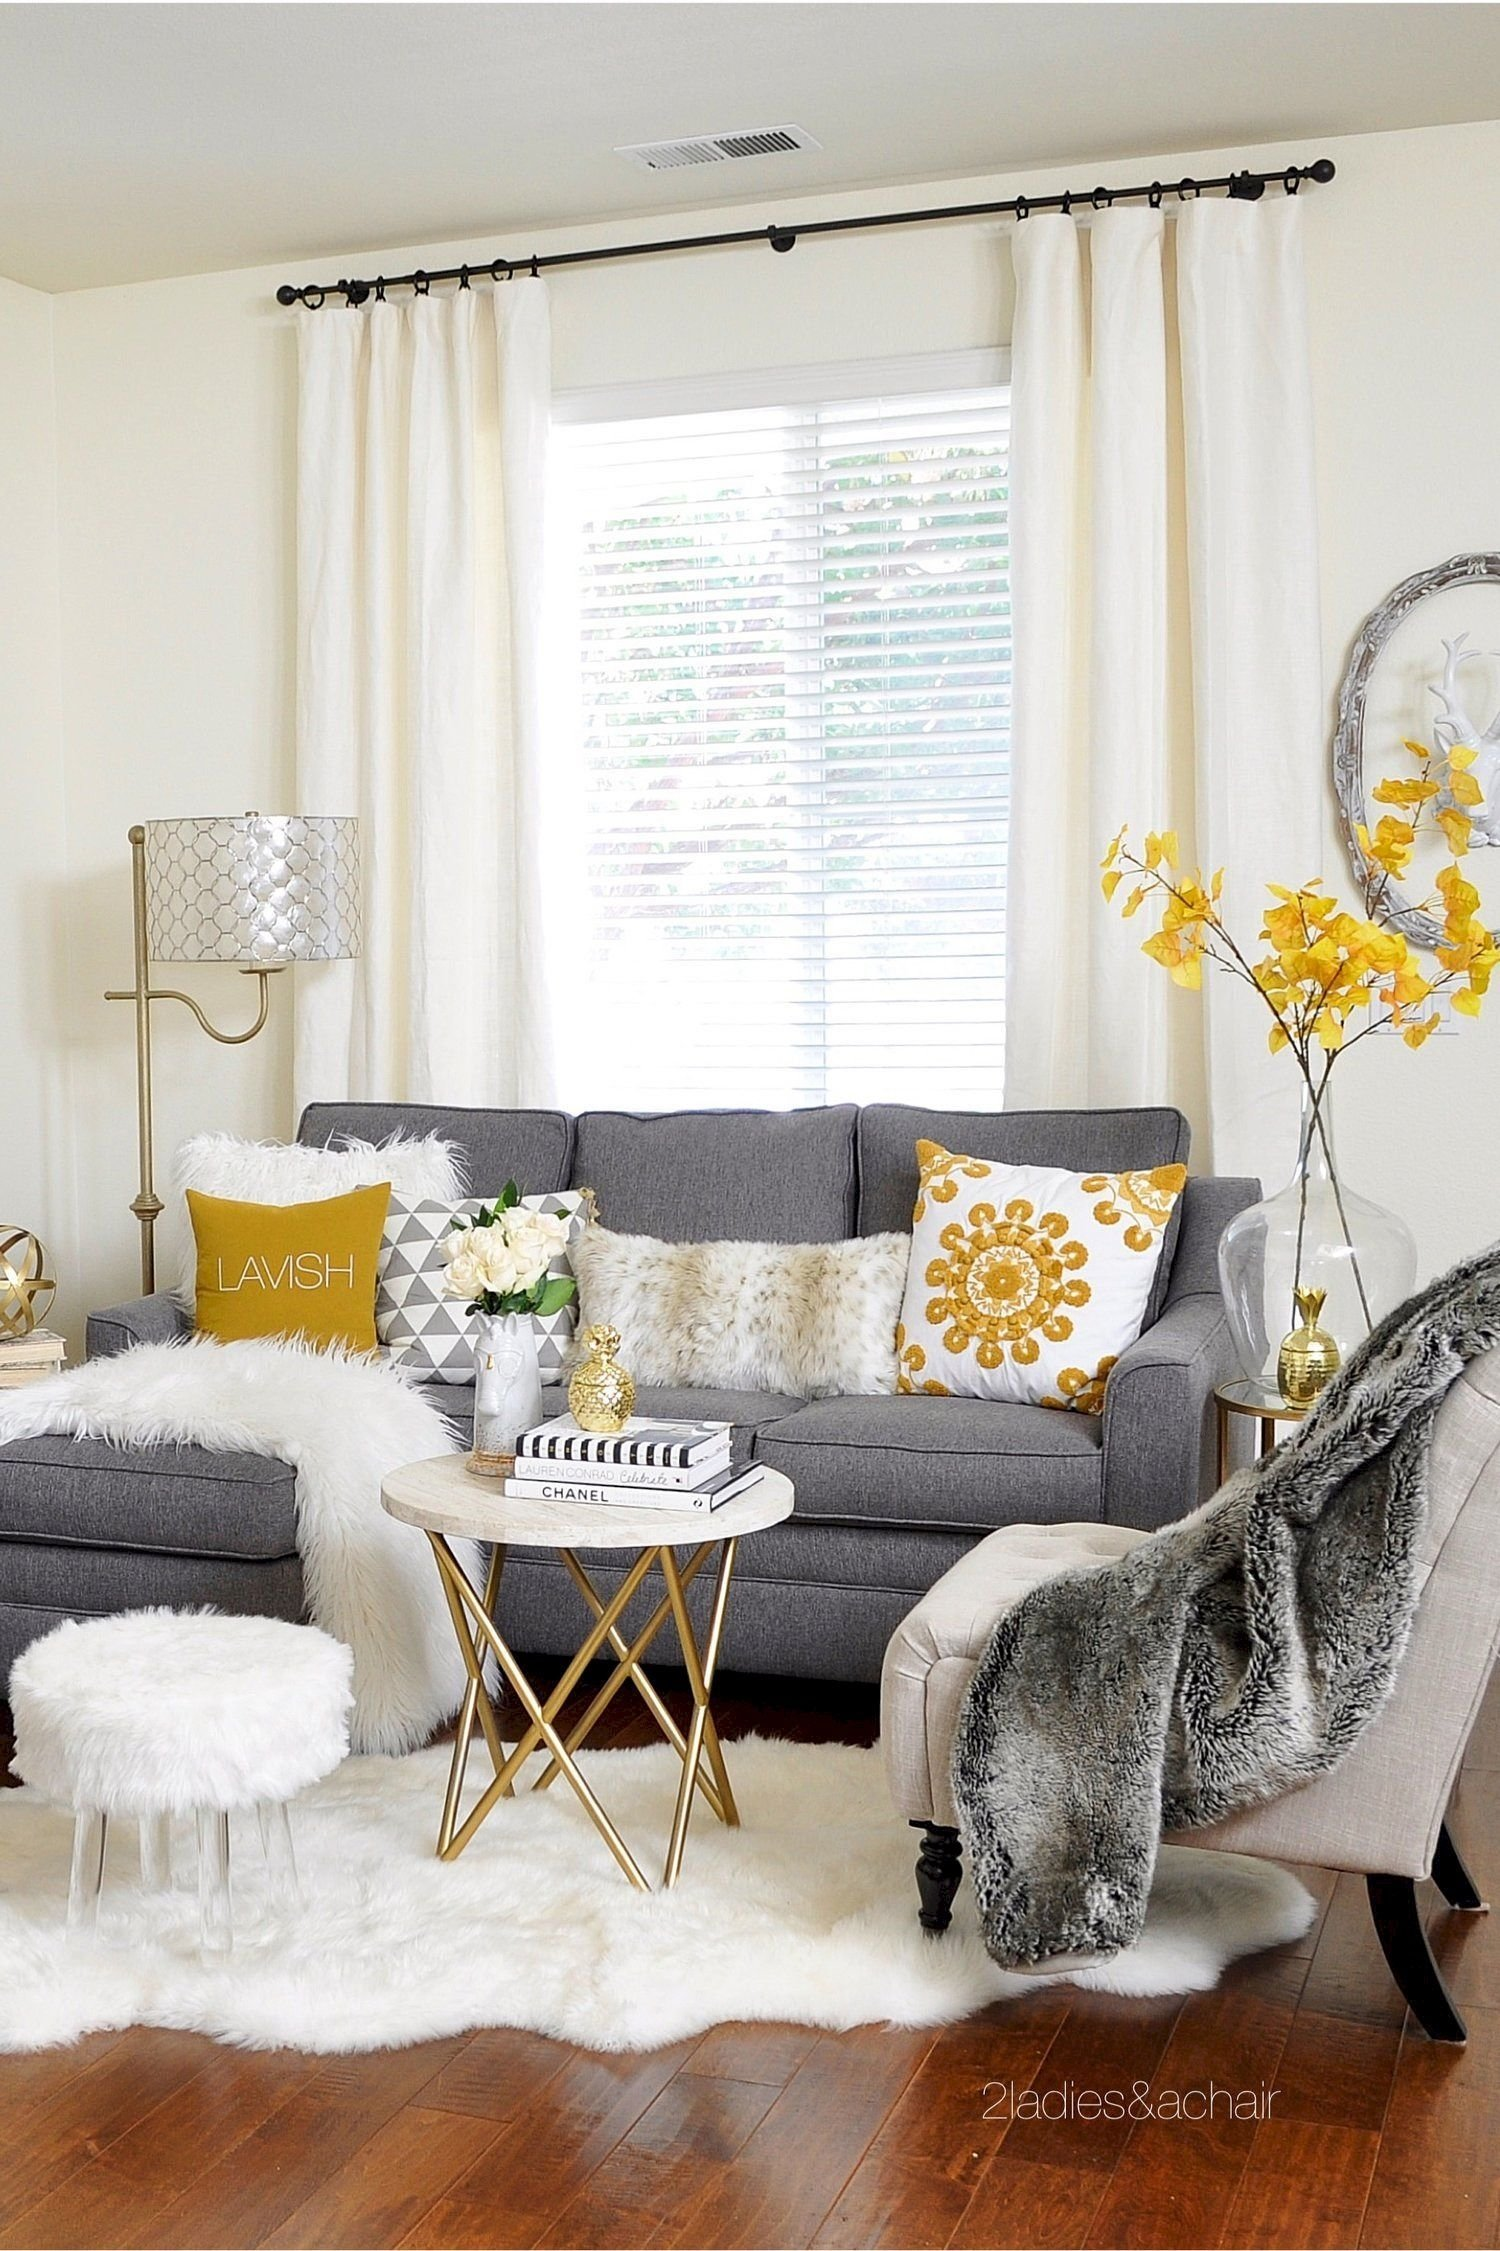 10 Attractive Very Small Living Room Ideas 25 beautiful living room design ideas small living rooms small 2 2020